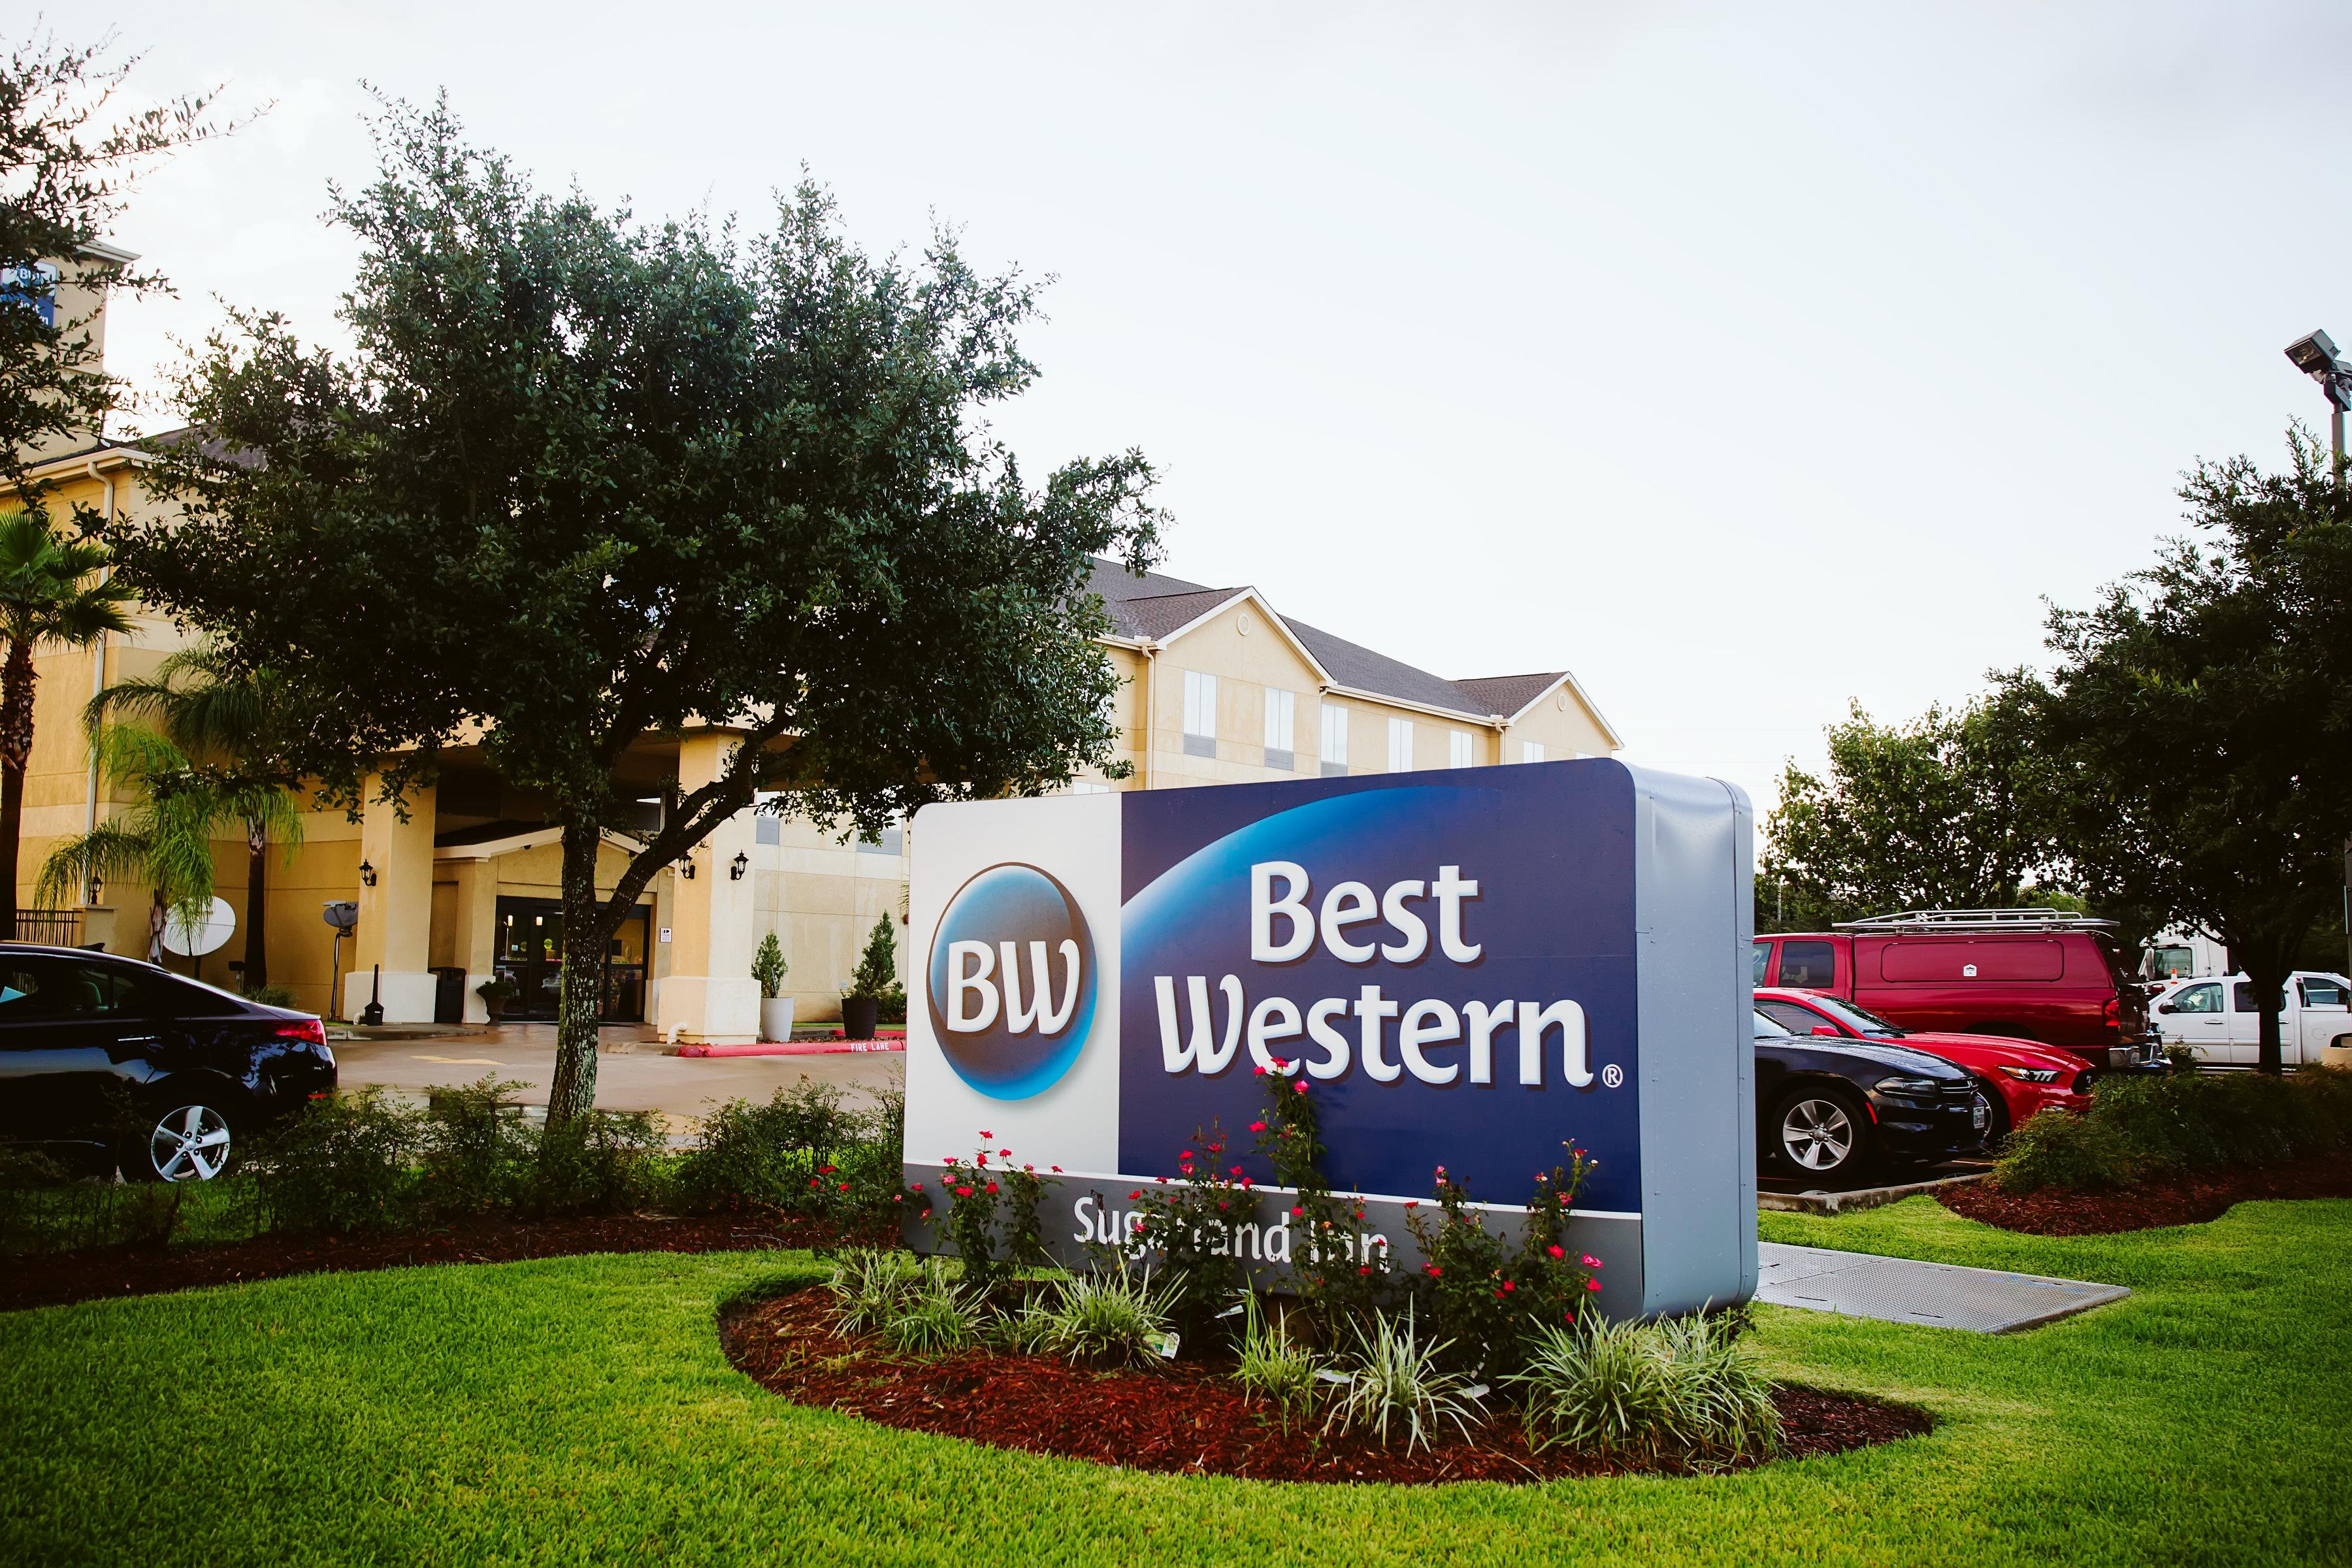 Best western coupons and discounts